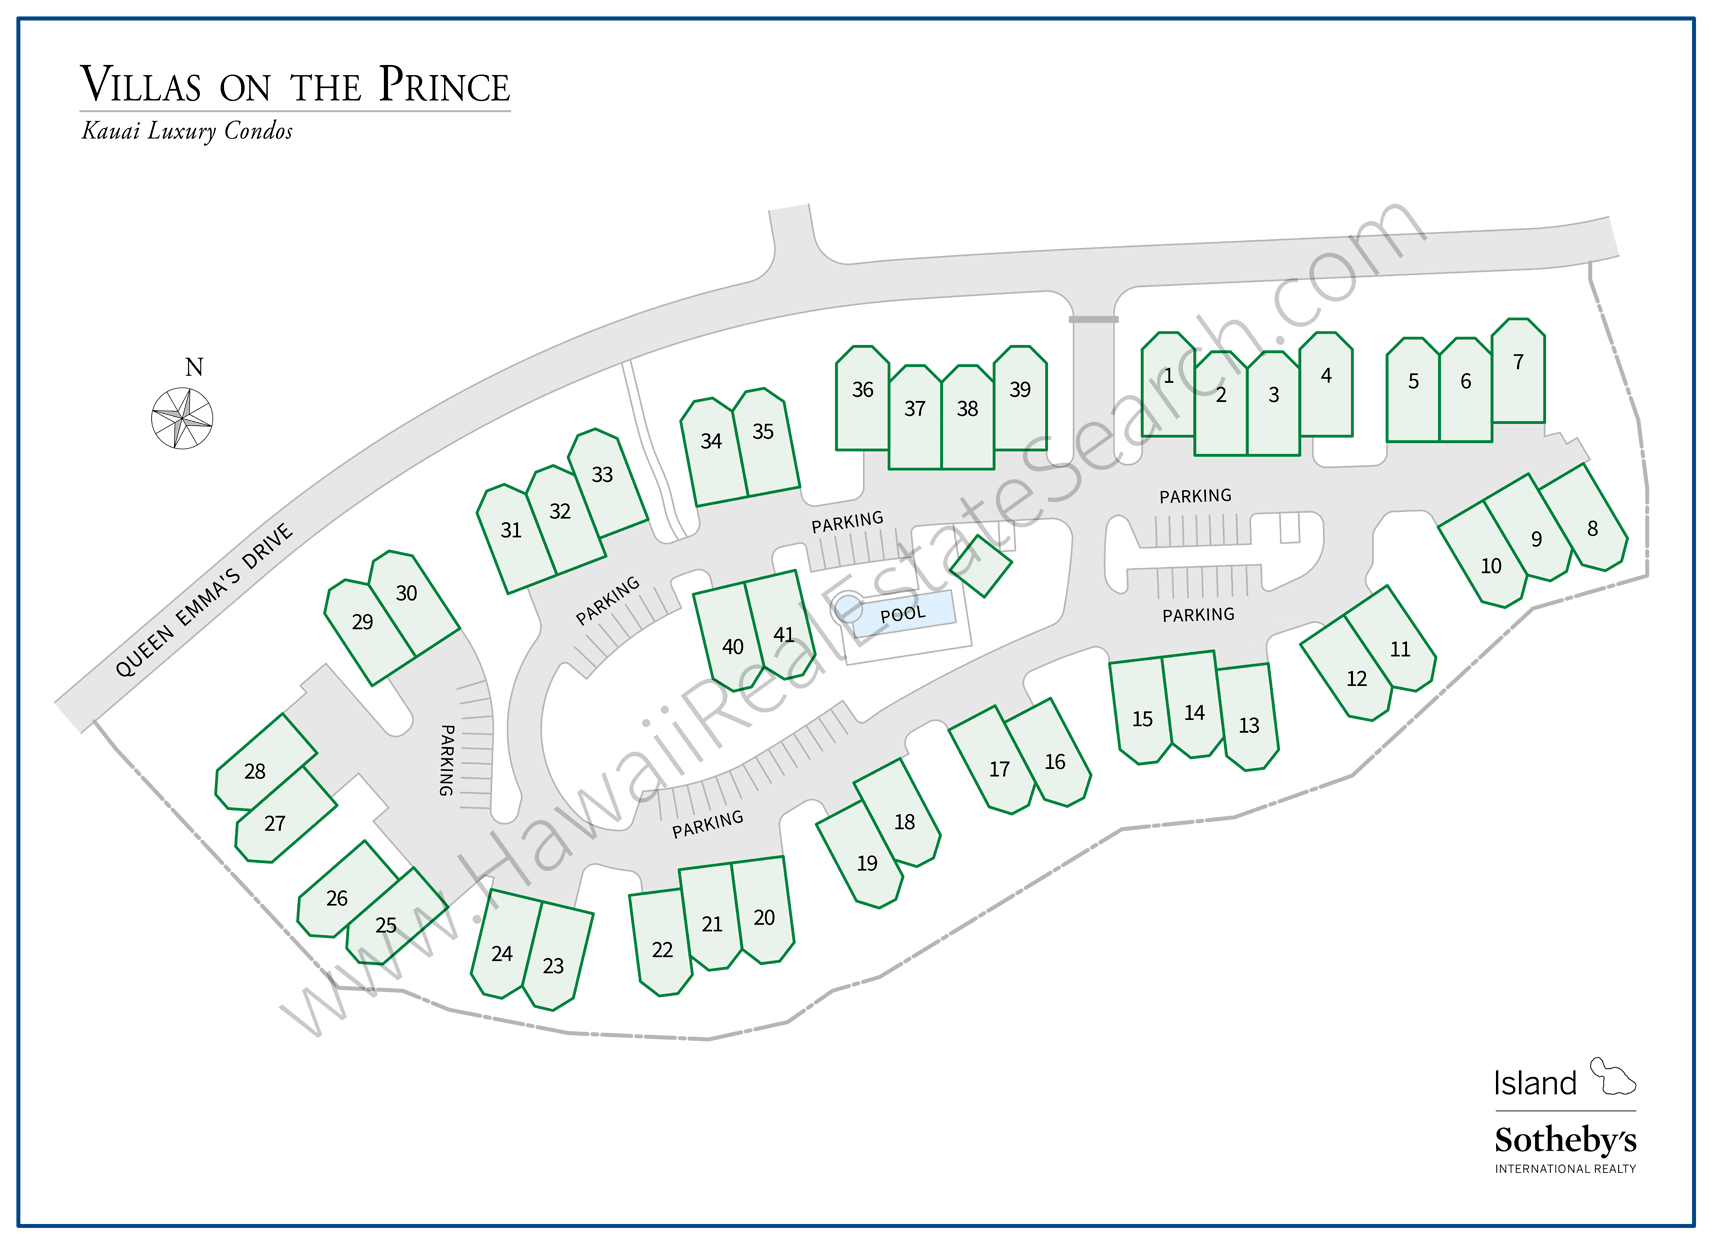 Villas on the Prince Property Map